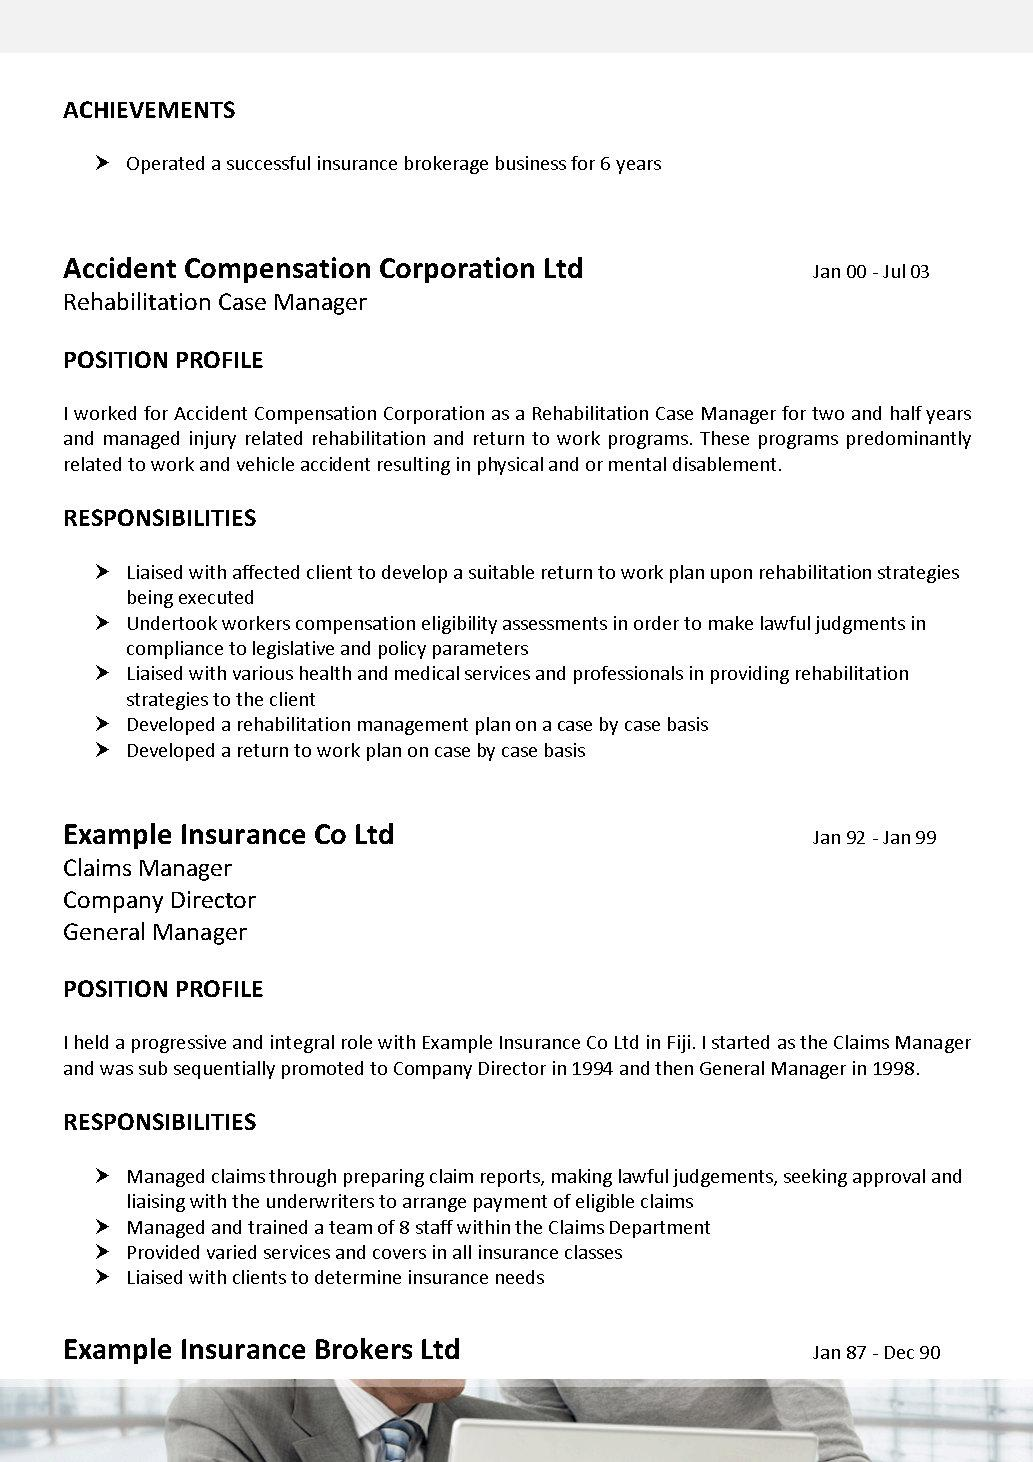 insurance broker resume insurance broker resume template resume templates insurance resume insurance broker resume tk - Mortgage Broker Resume Sample